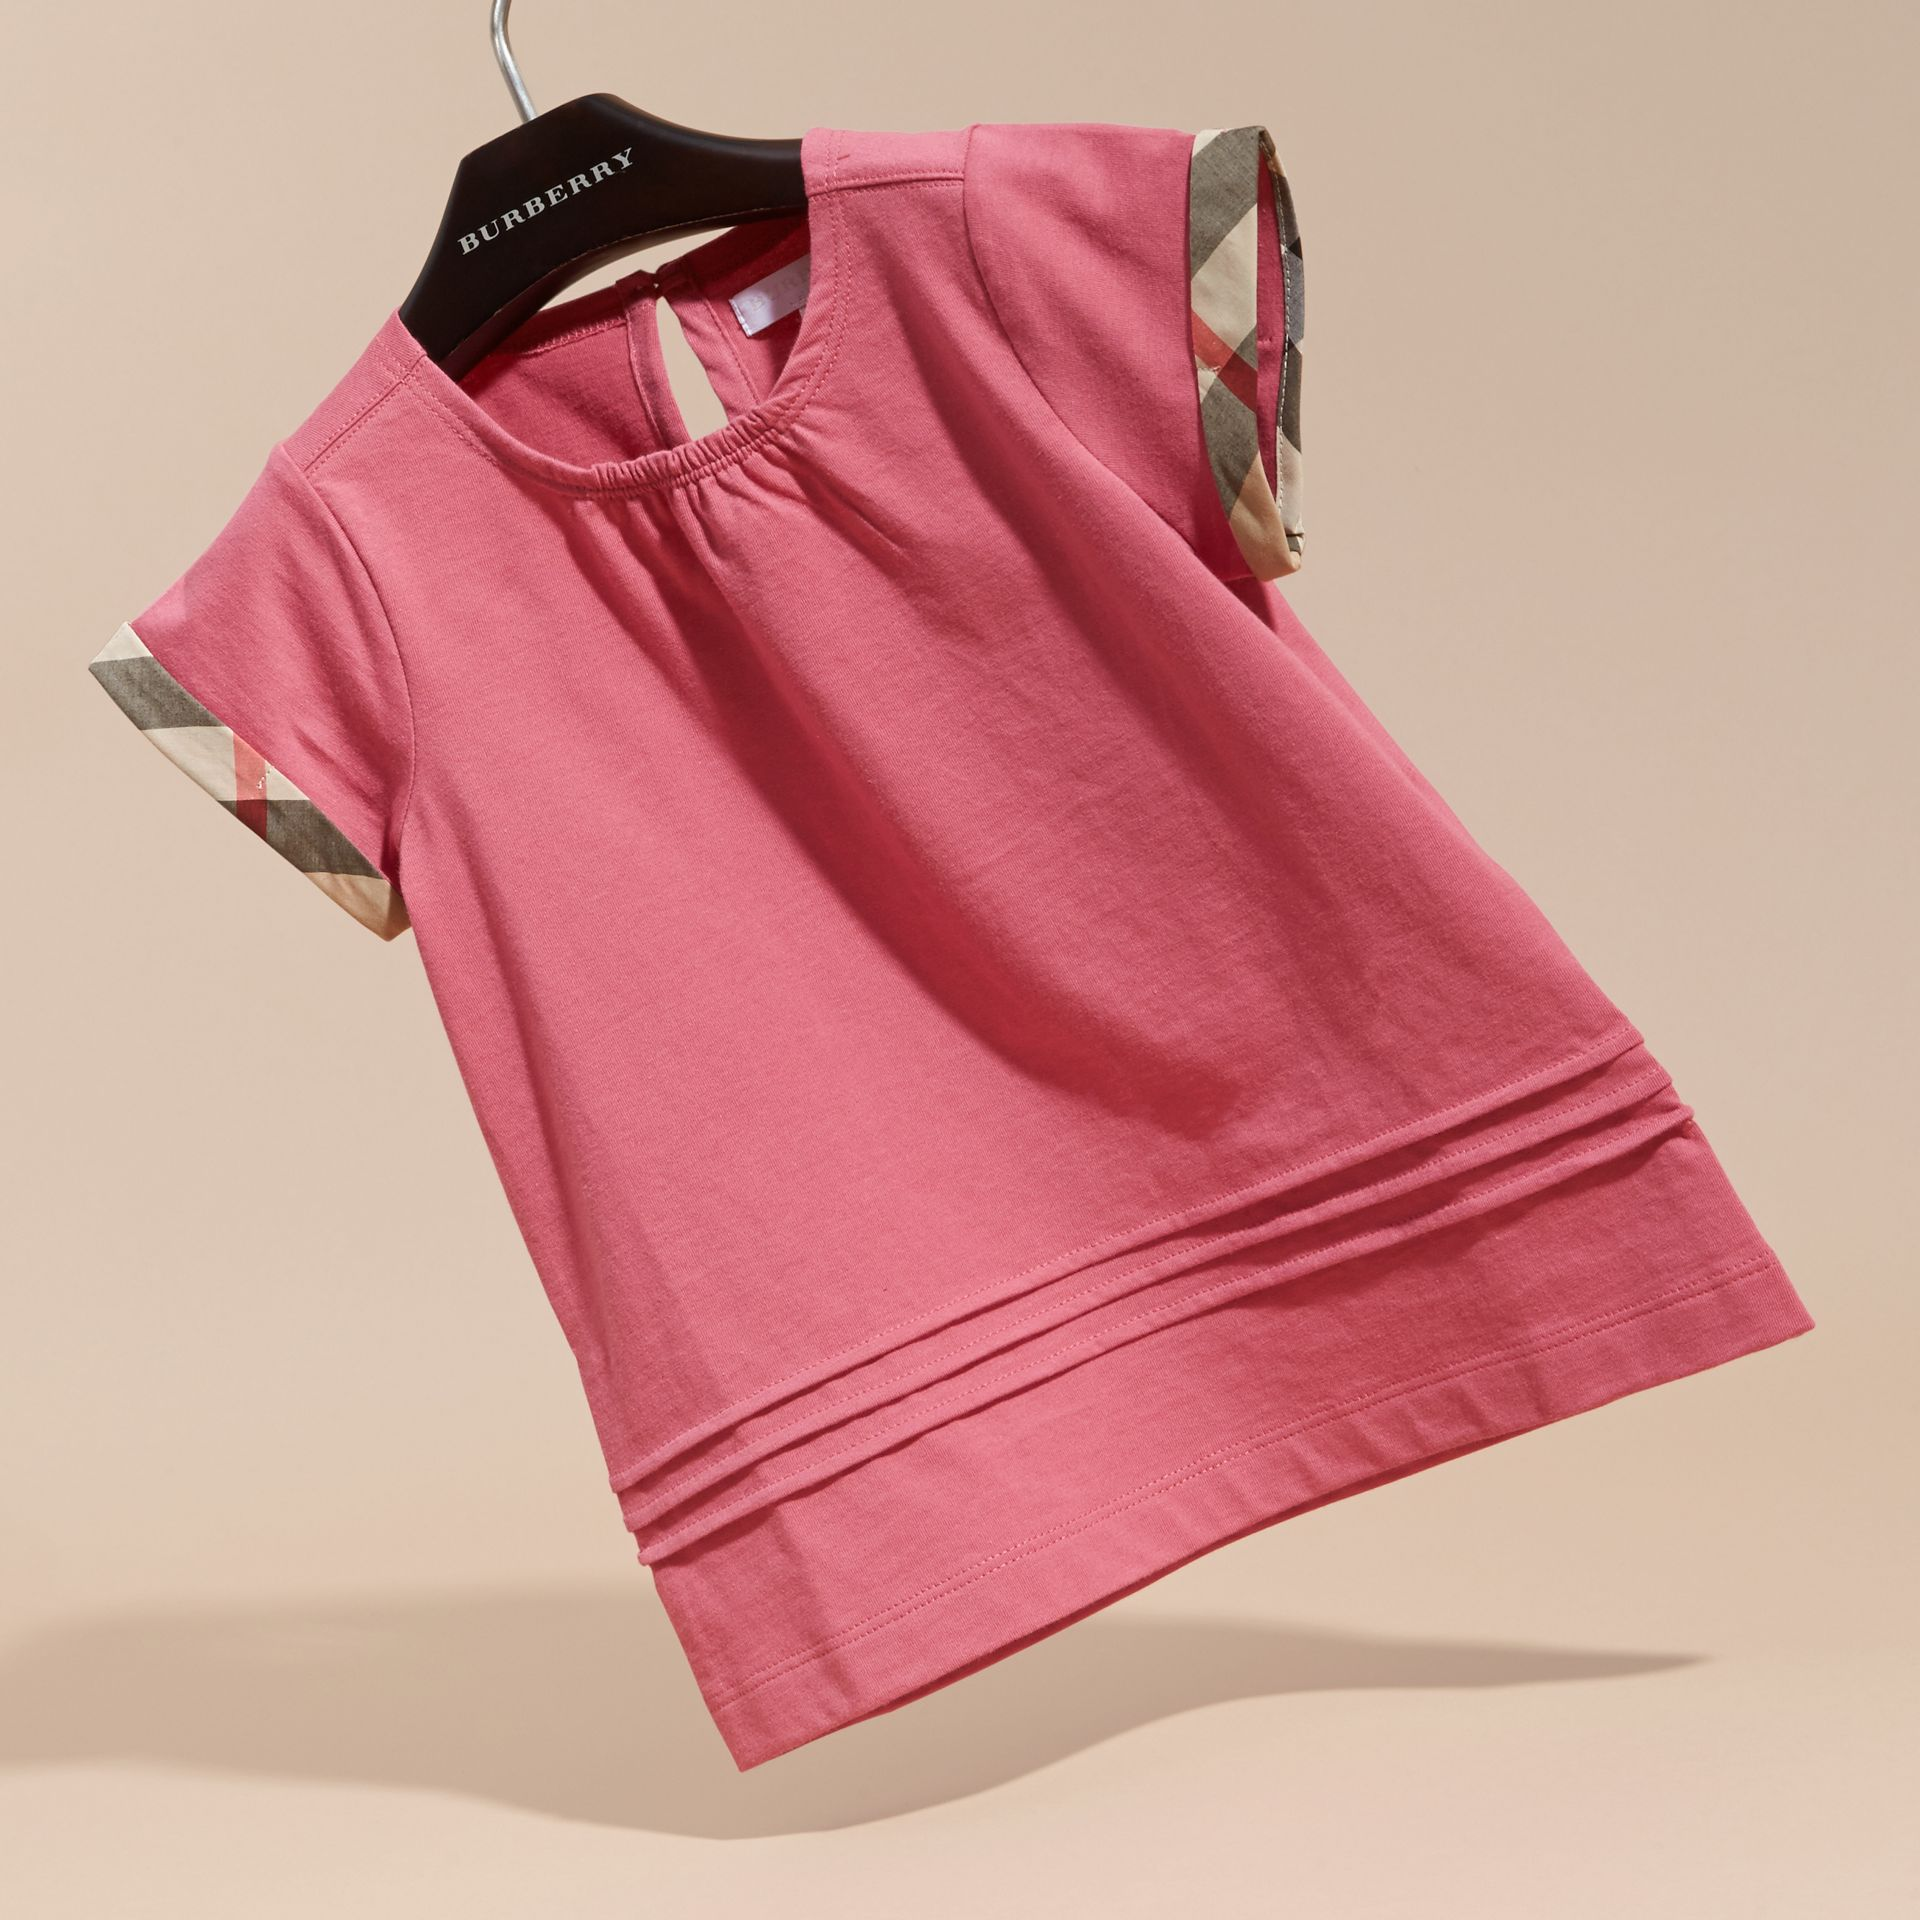 Pleat and Check Detail Cotton T-shirt in Pink Azalea - gallery image 3